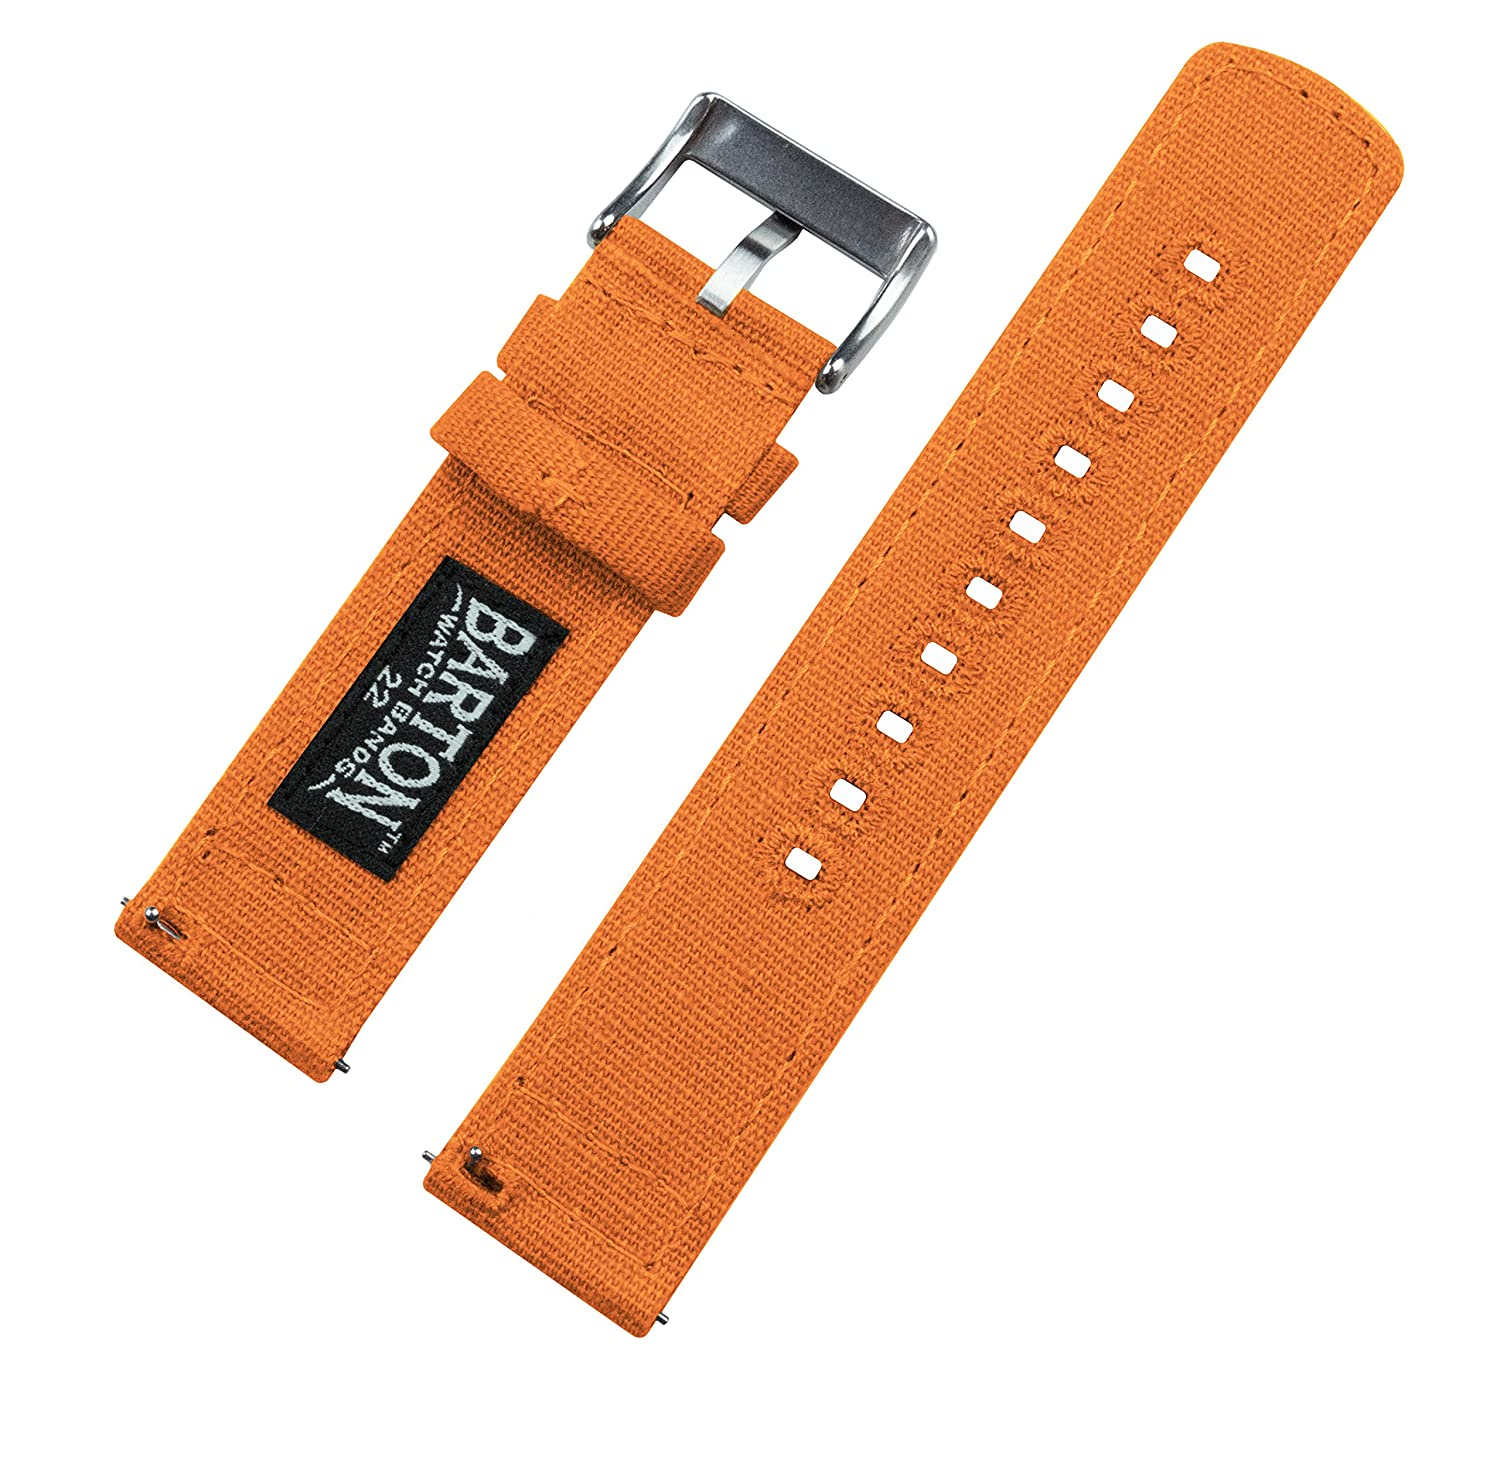 Barton Canvas Quick Release Straps - Choose Color & Width - 18mm, 20mm, 22mm - Pumpkin 18mm | Amazon.com